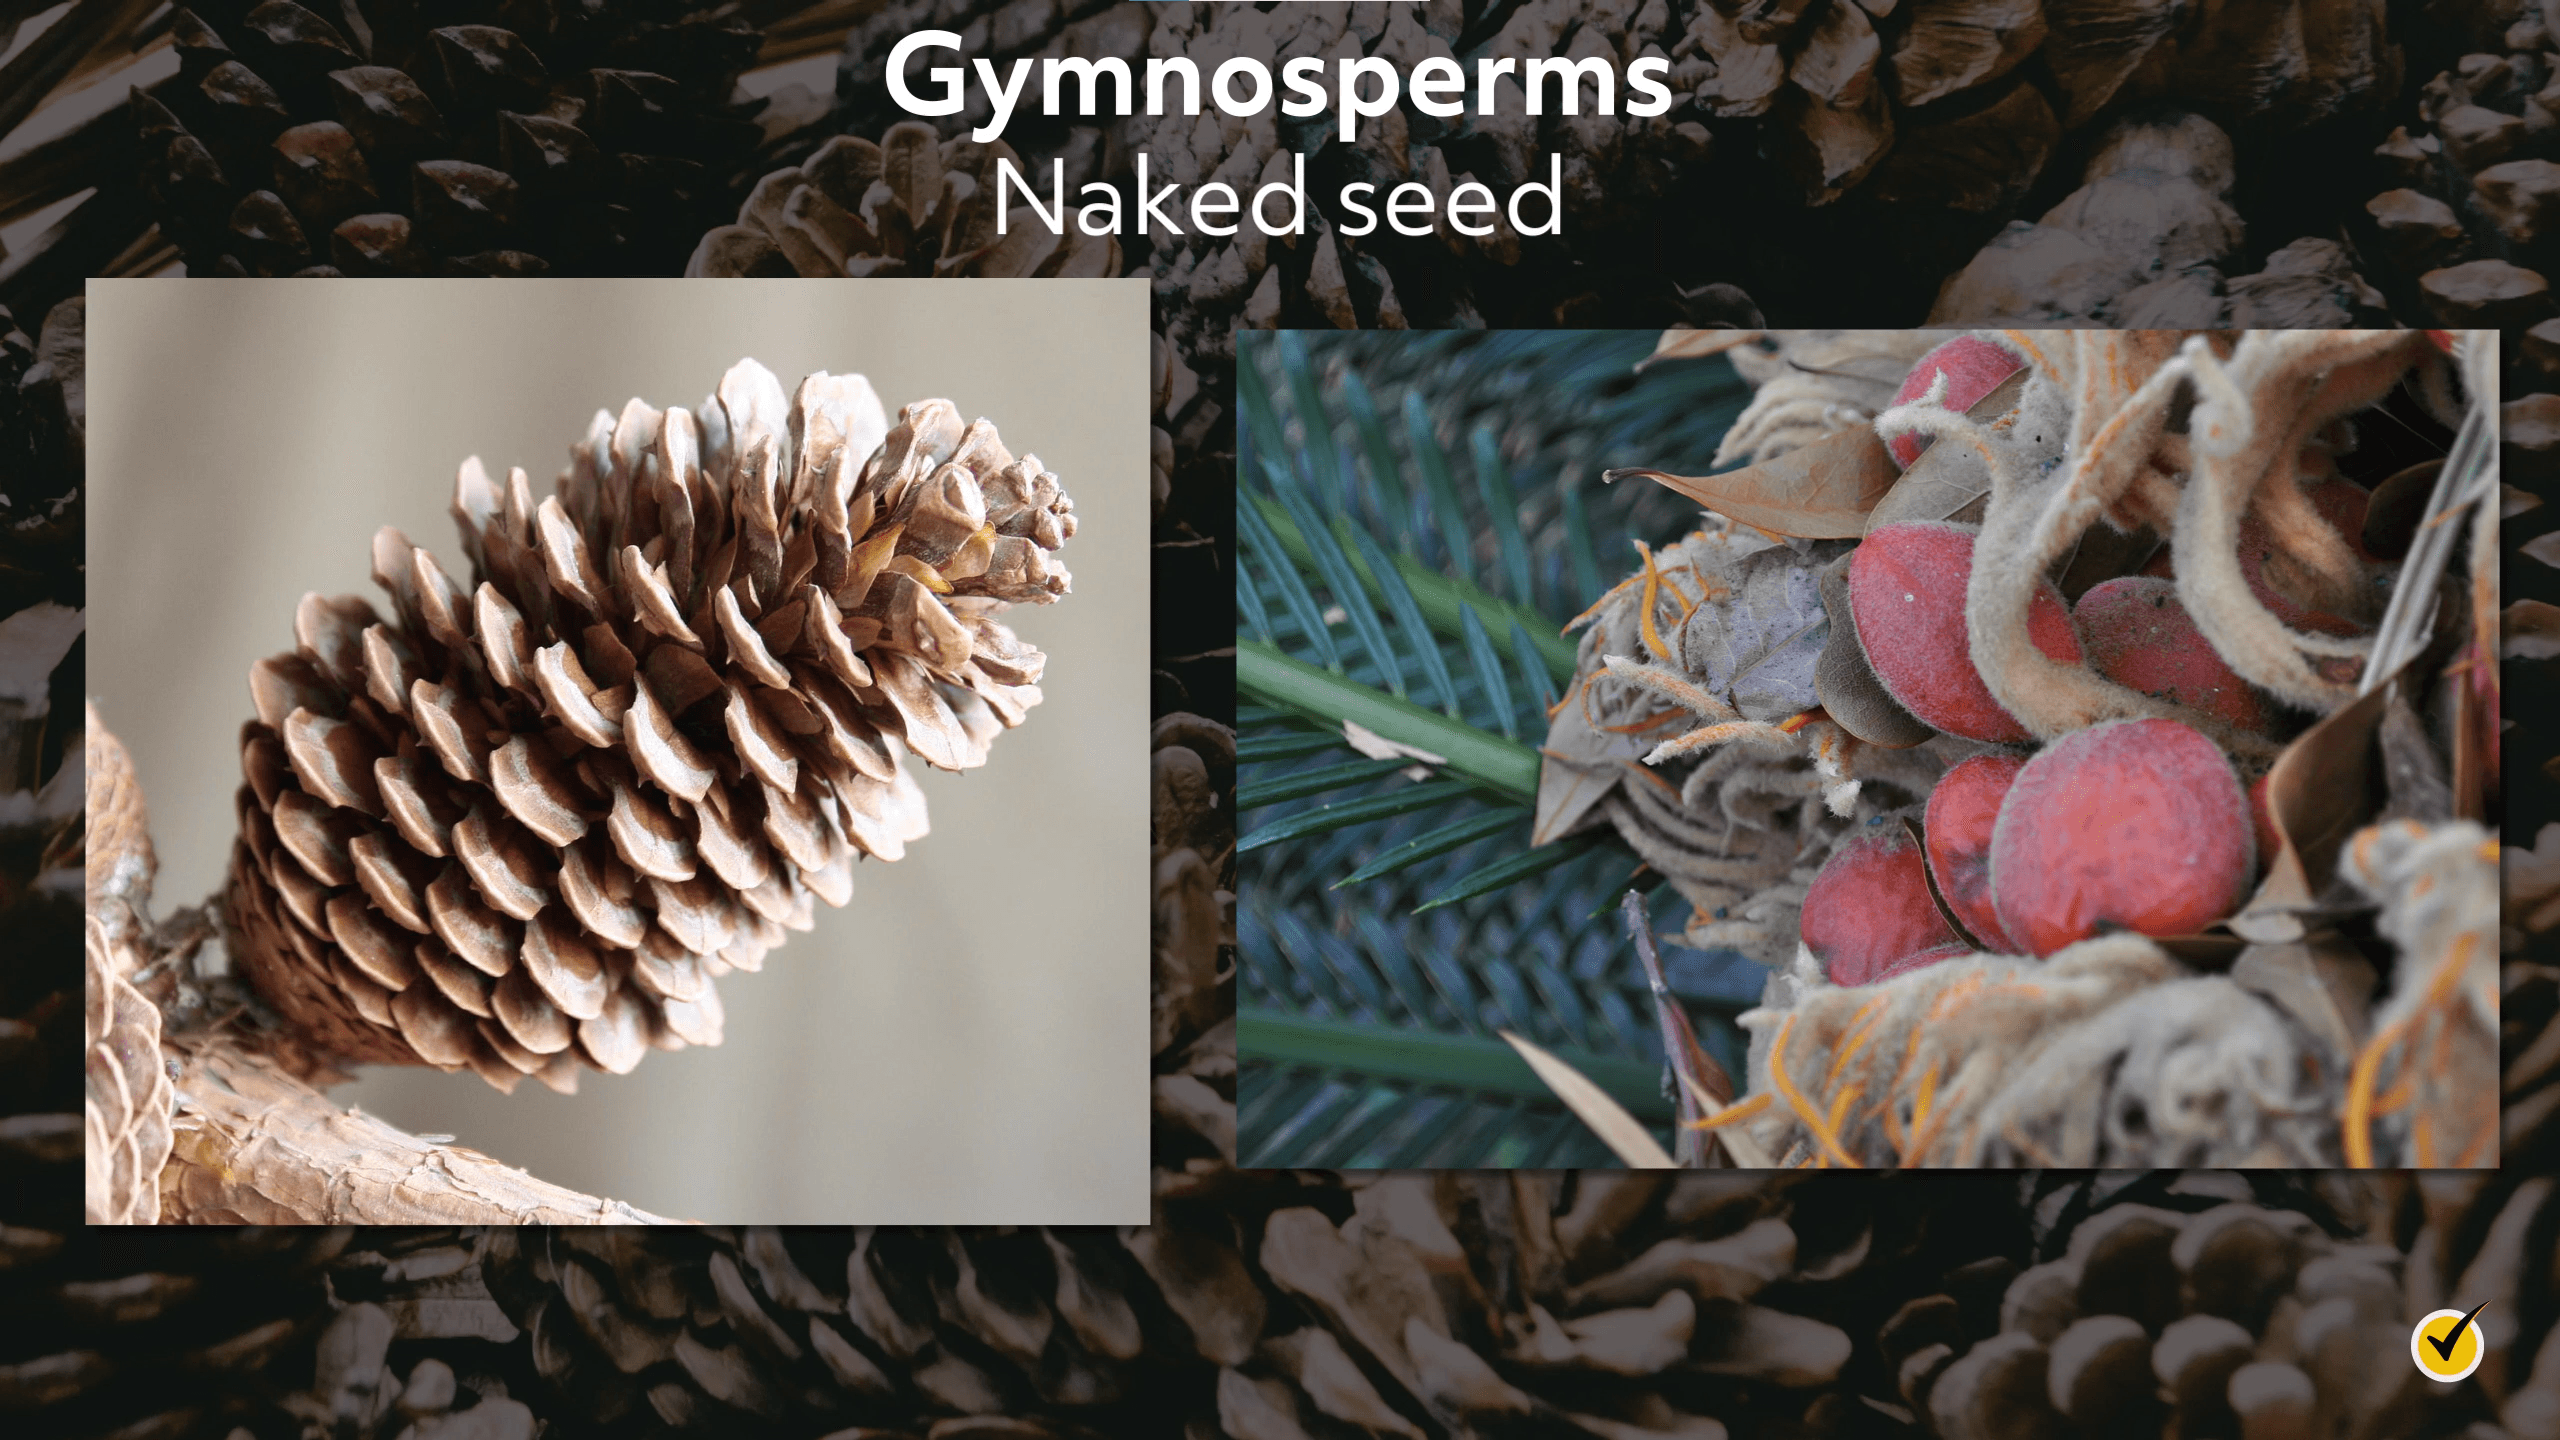 Image of pinecones and other dry leafy materials that are gymnosperms.